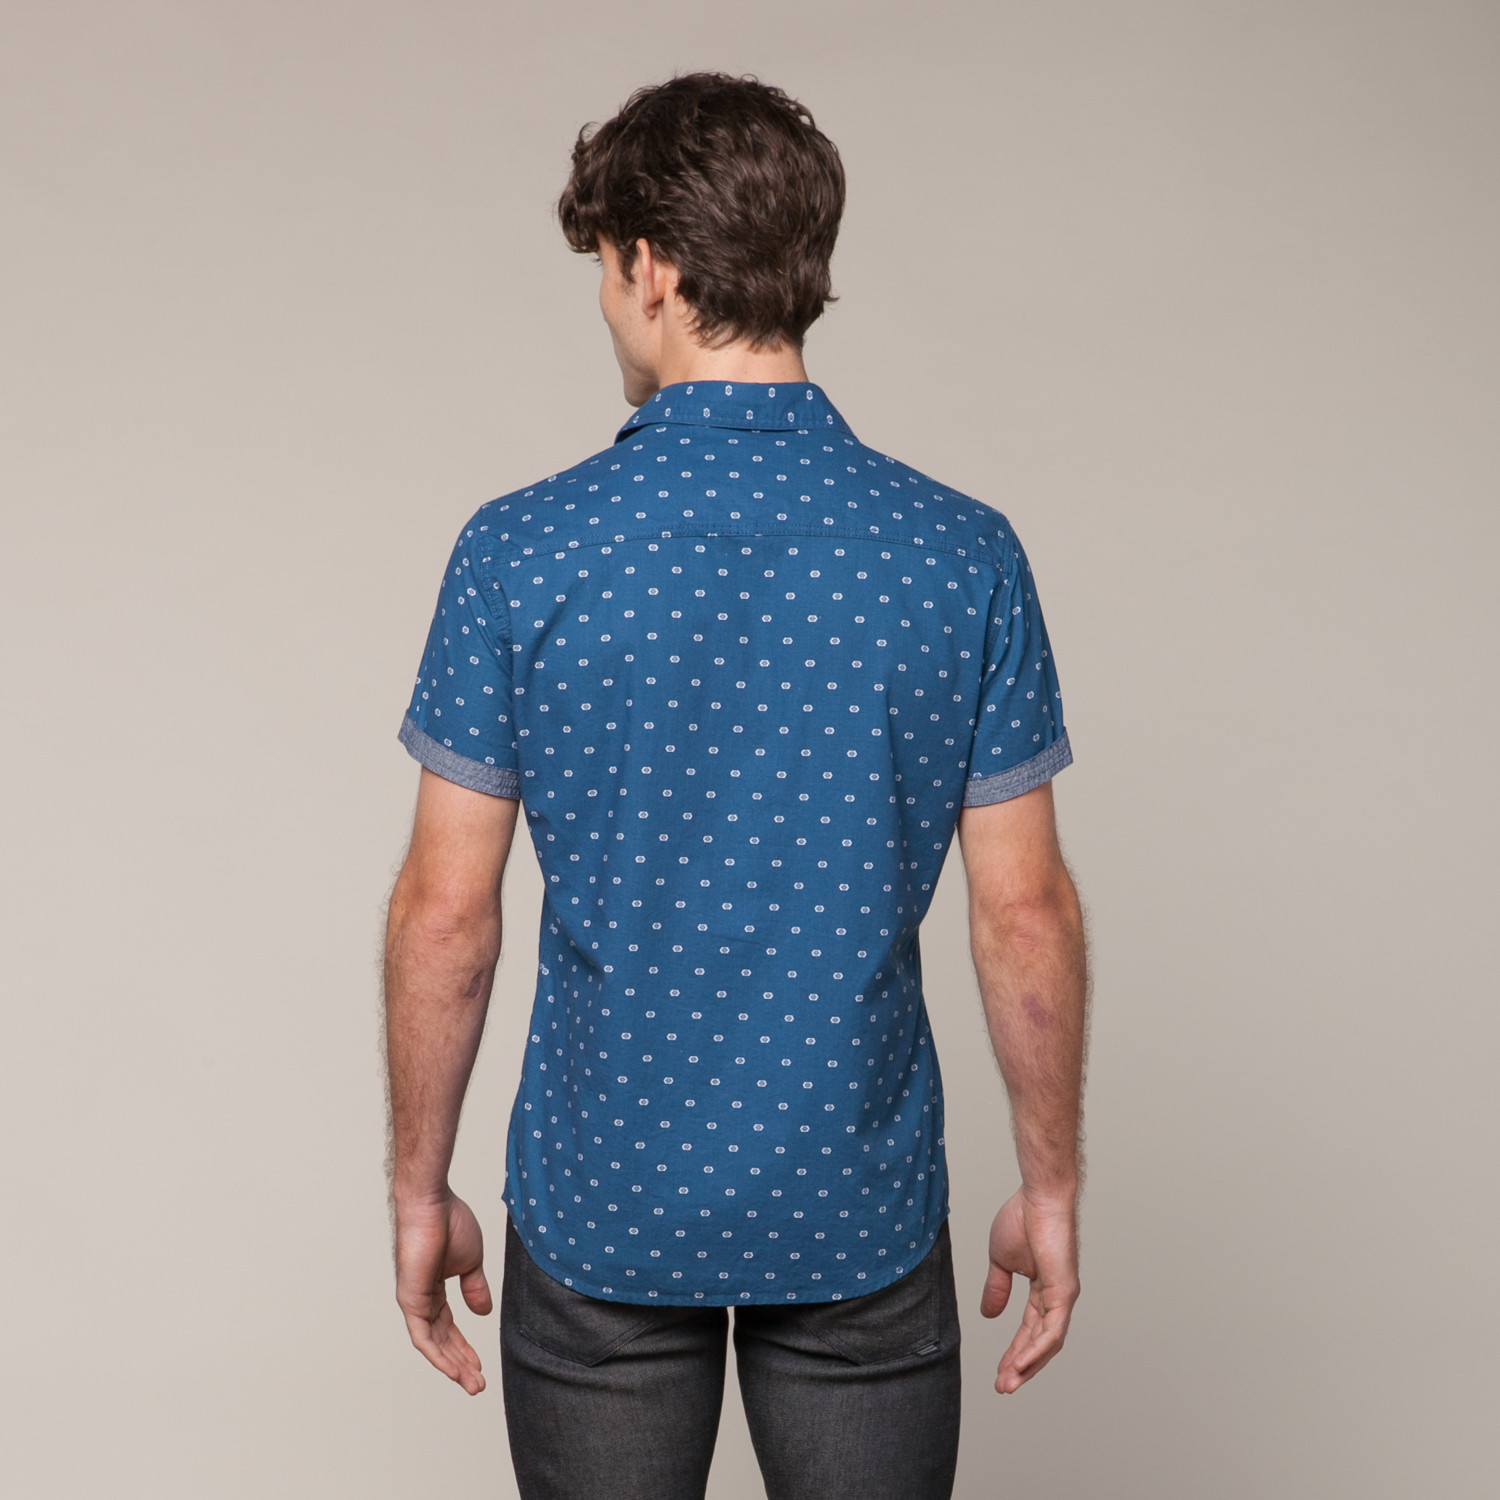 Button Up T Shirt Navy S Px Clothing Touch Of Modern